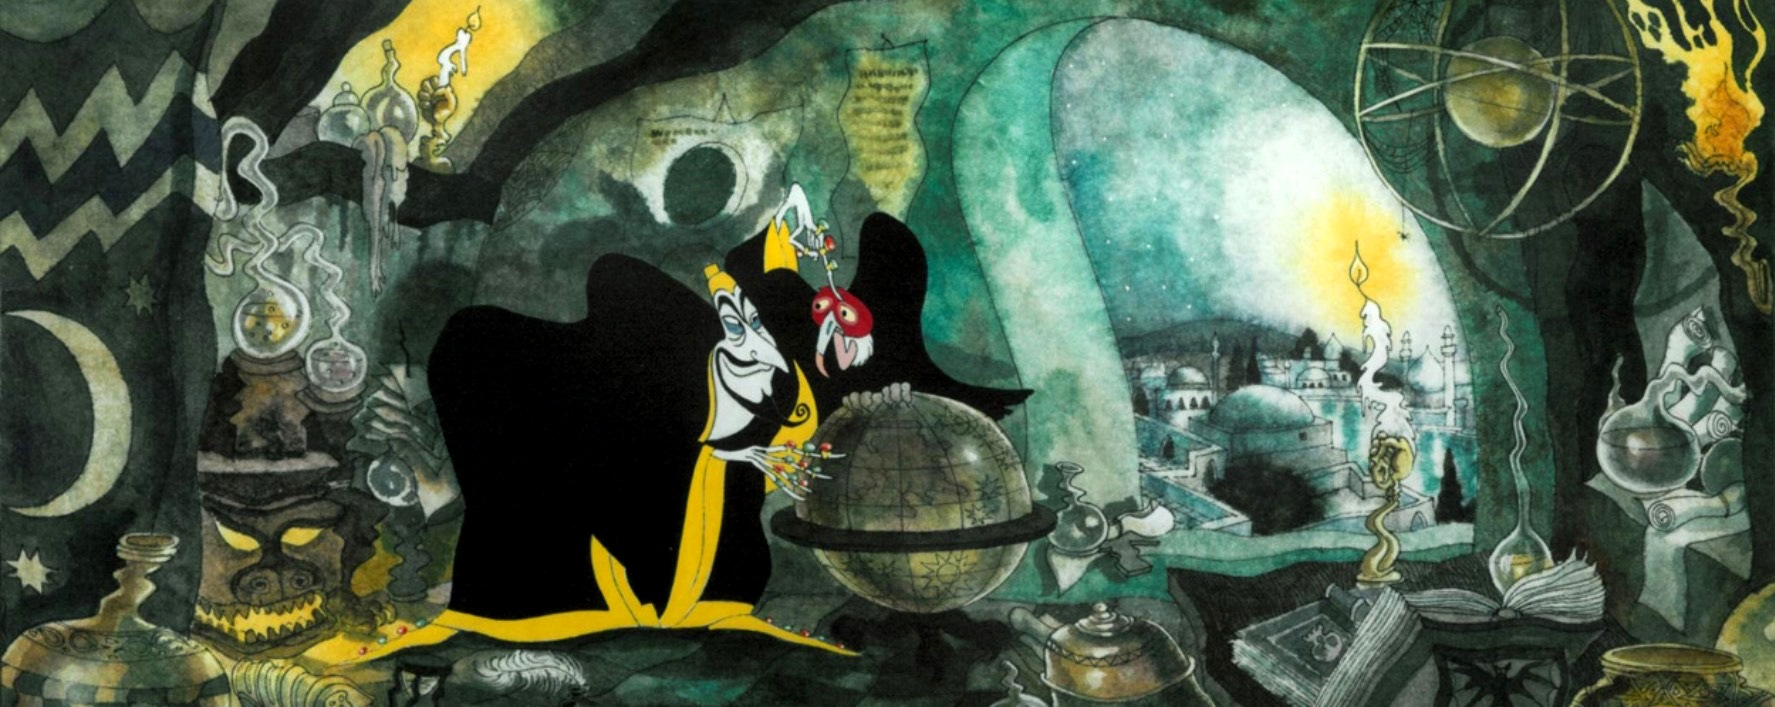 The vizier Zigzag (voiced by Vincent Price) in The Thief and the Cobbler (1994)